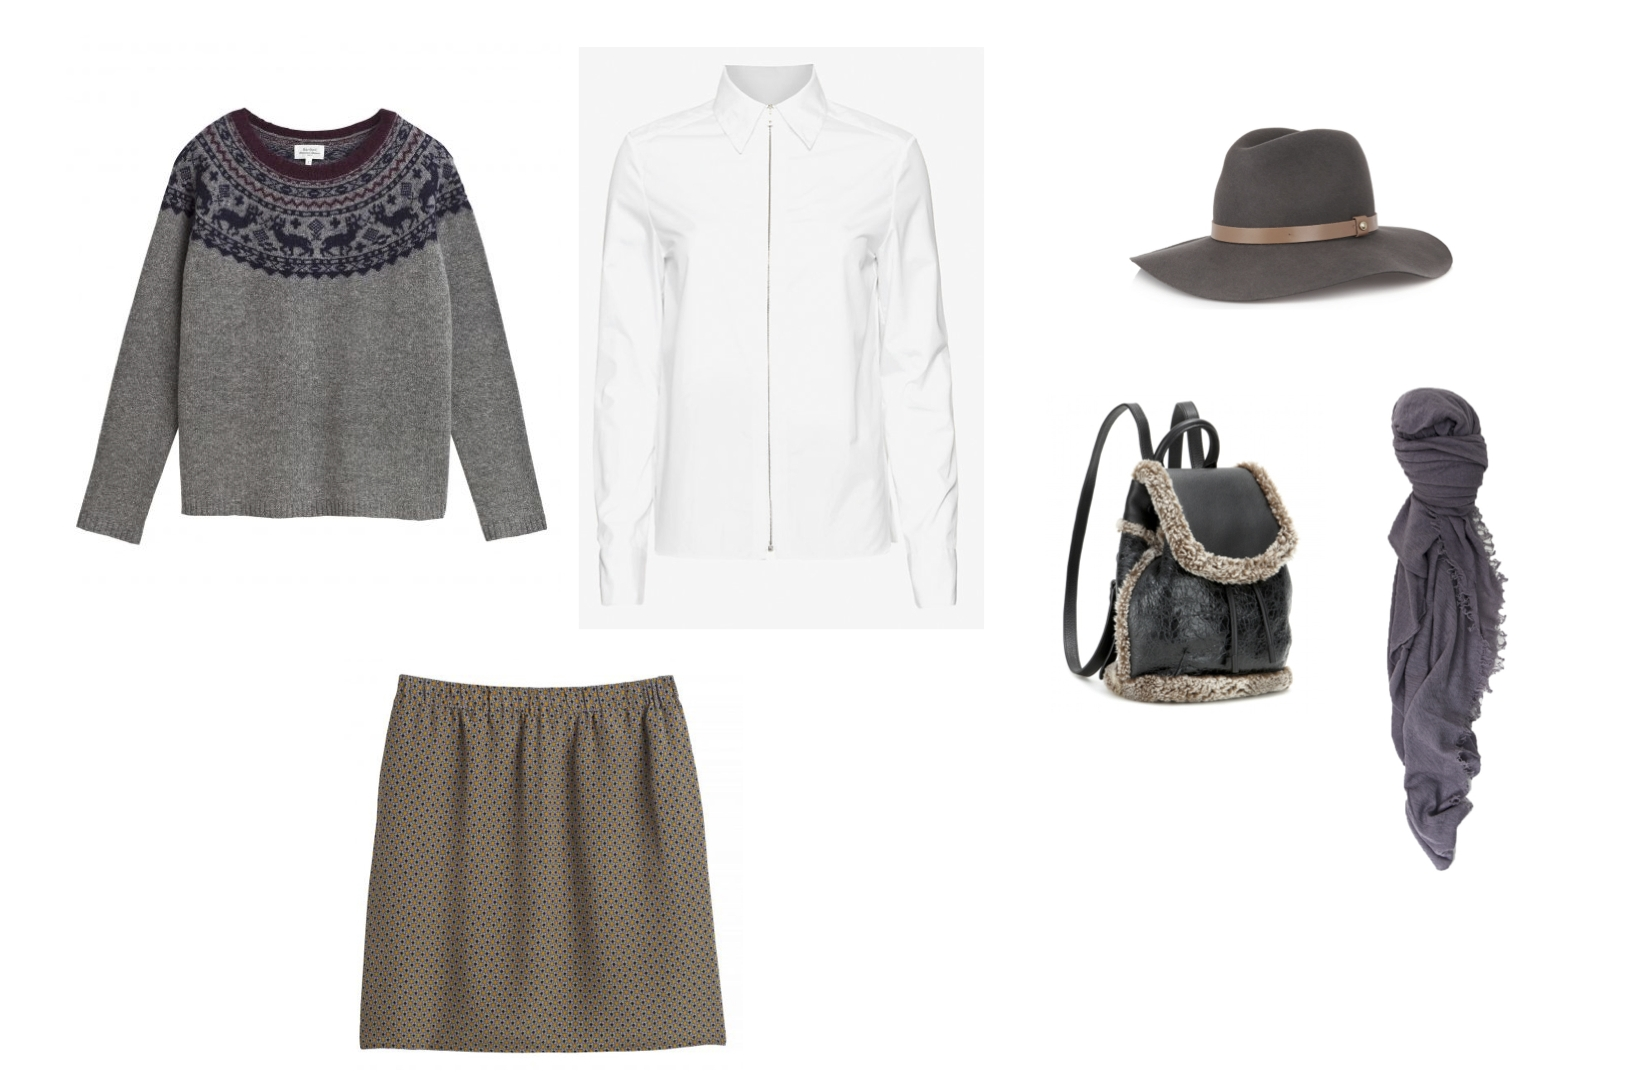 Hartford Meribel Sweater, Rag & Bone Frances Shirt, Hartford Jani Skirt, Rag & Bone Wide Brim Fedora and Mini Pilot Shearling Backpack, Grisal Scarf